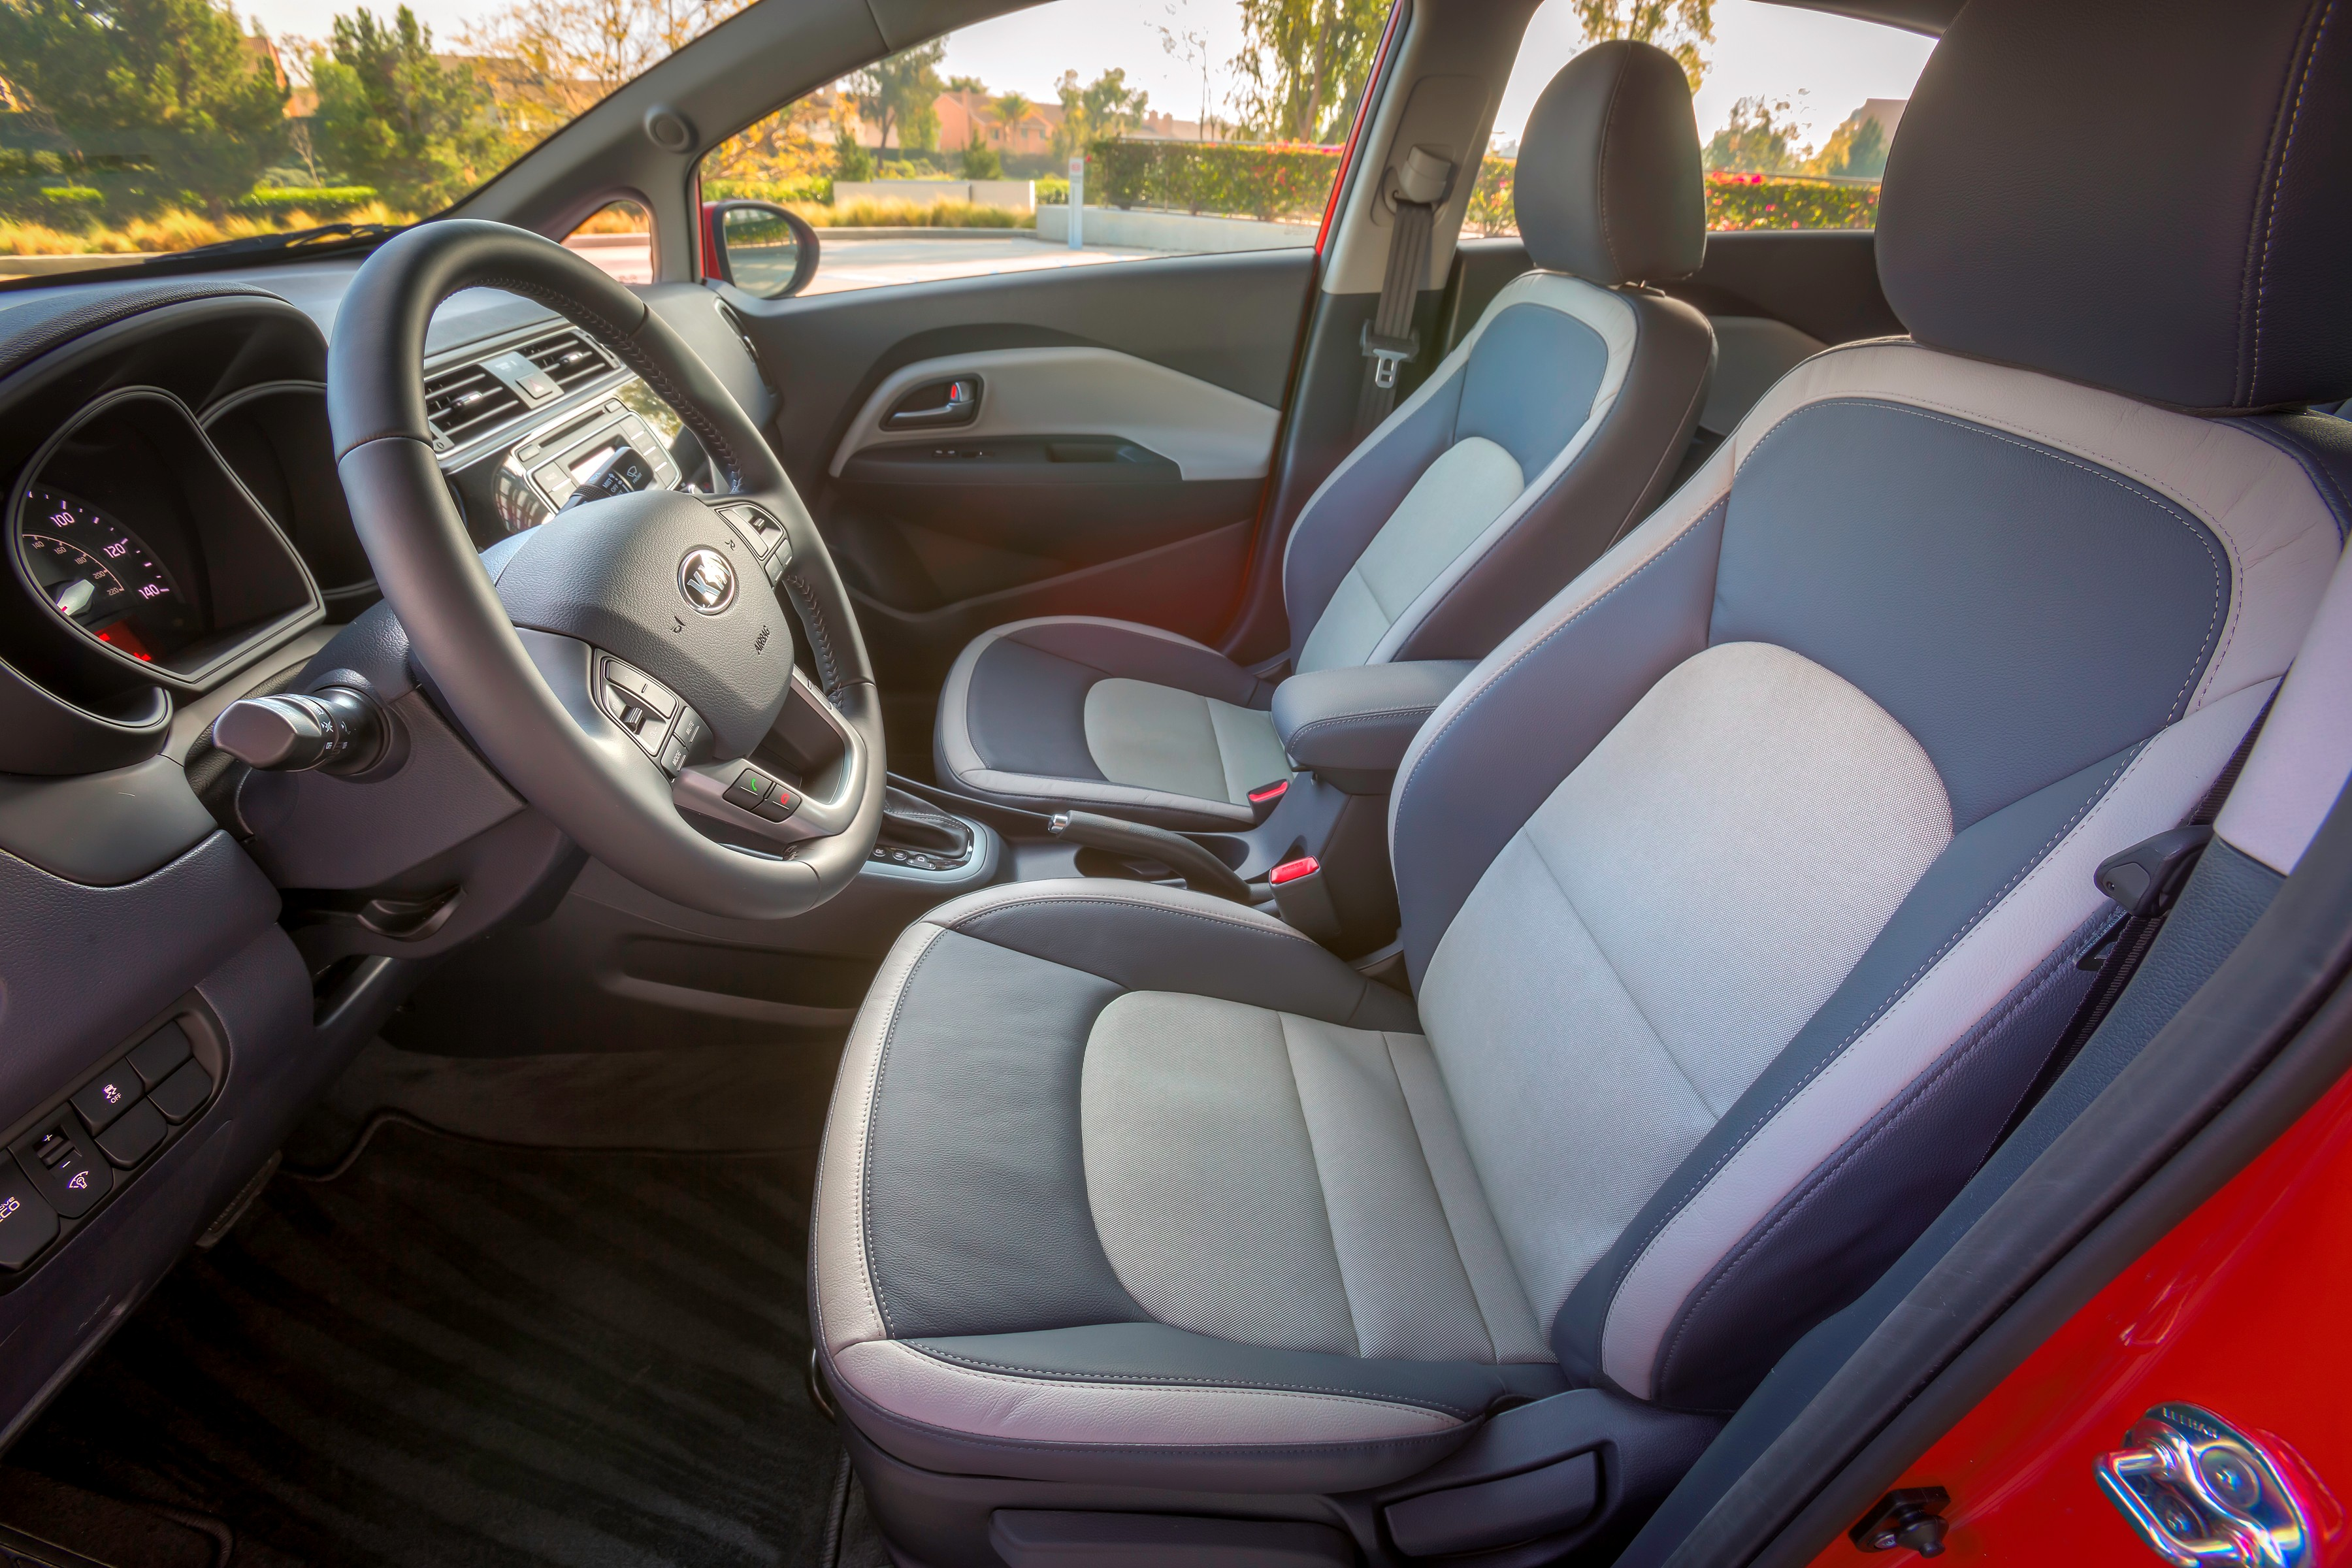 2016 Kia Rio For Sale In Little Rock Ar 1 6l Engine Safety The